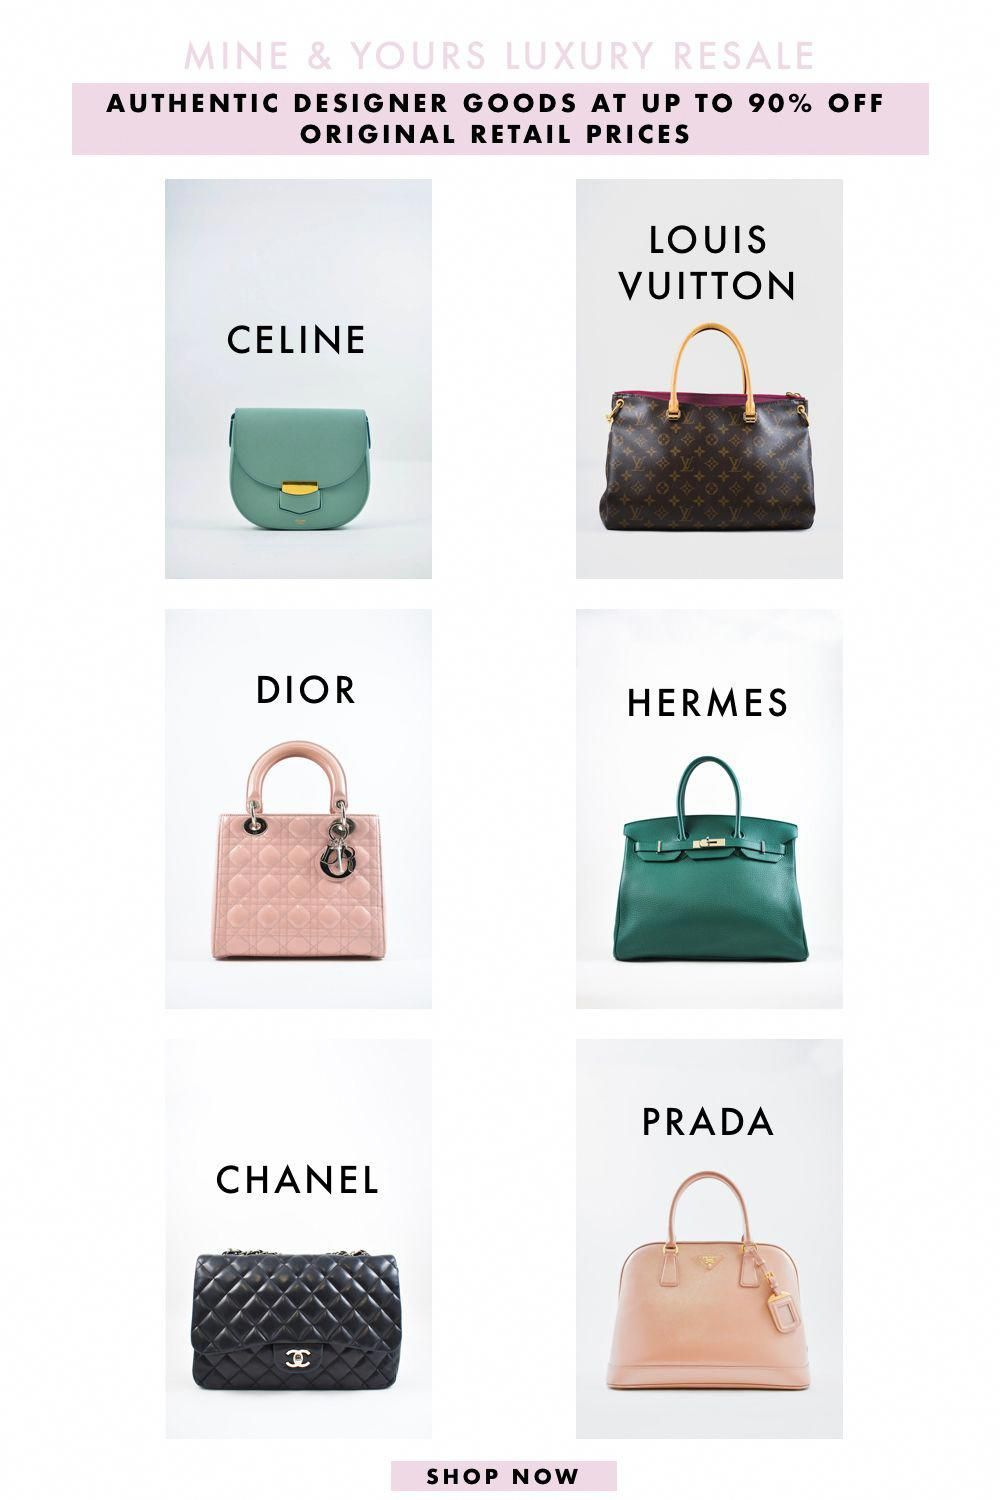 12bb7c5a8547c5 We specialize in pre-loved and consignment designer handbags at up to 80%  off the original retail price from brands like Chanel, Celine, Prada, ...